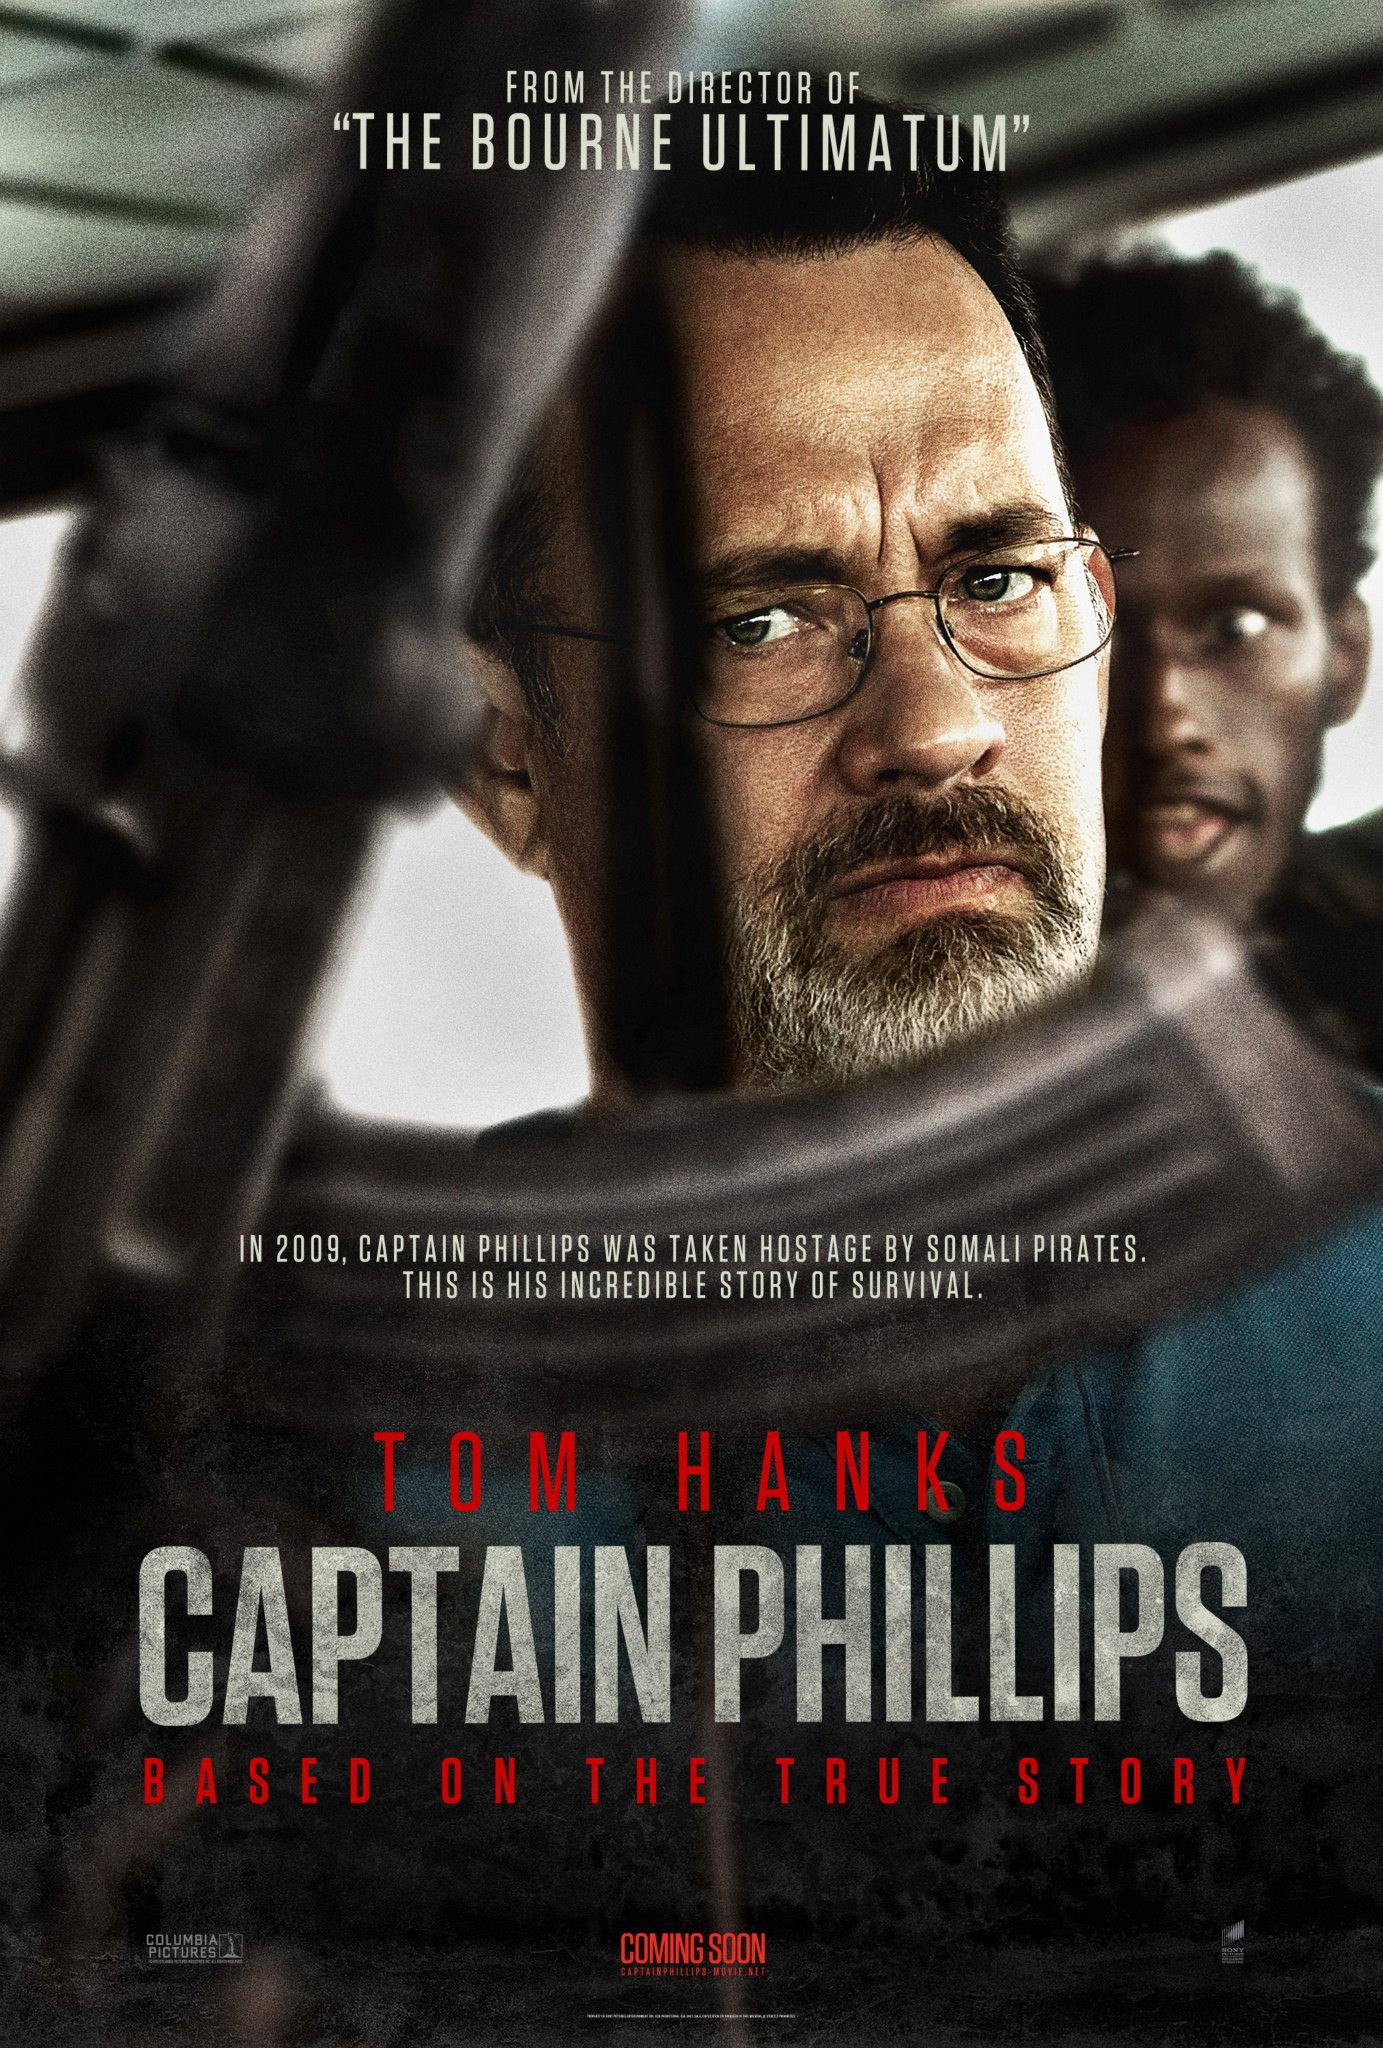 New Posters For Paul Greengrass' High Seas Drama 'Captain